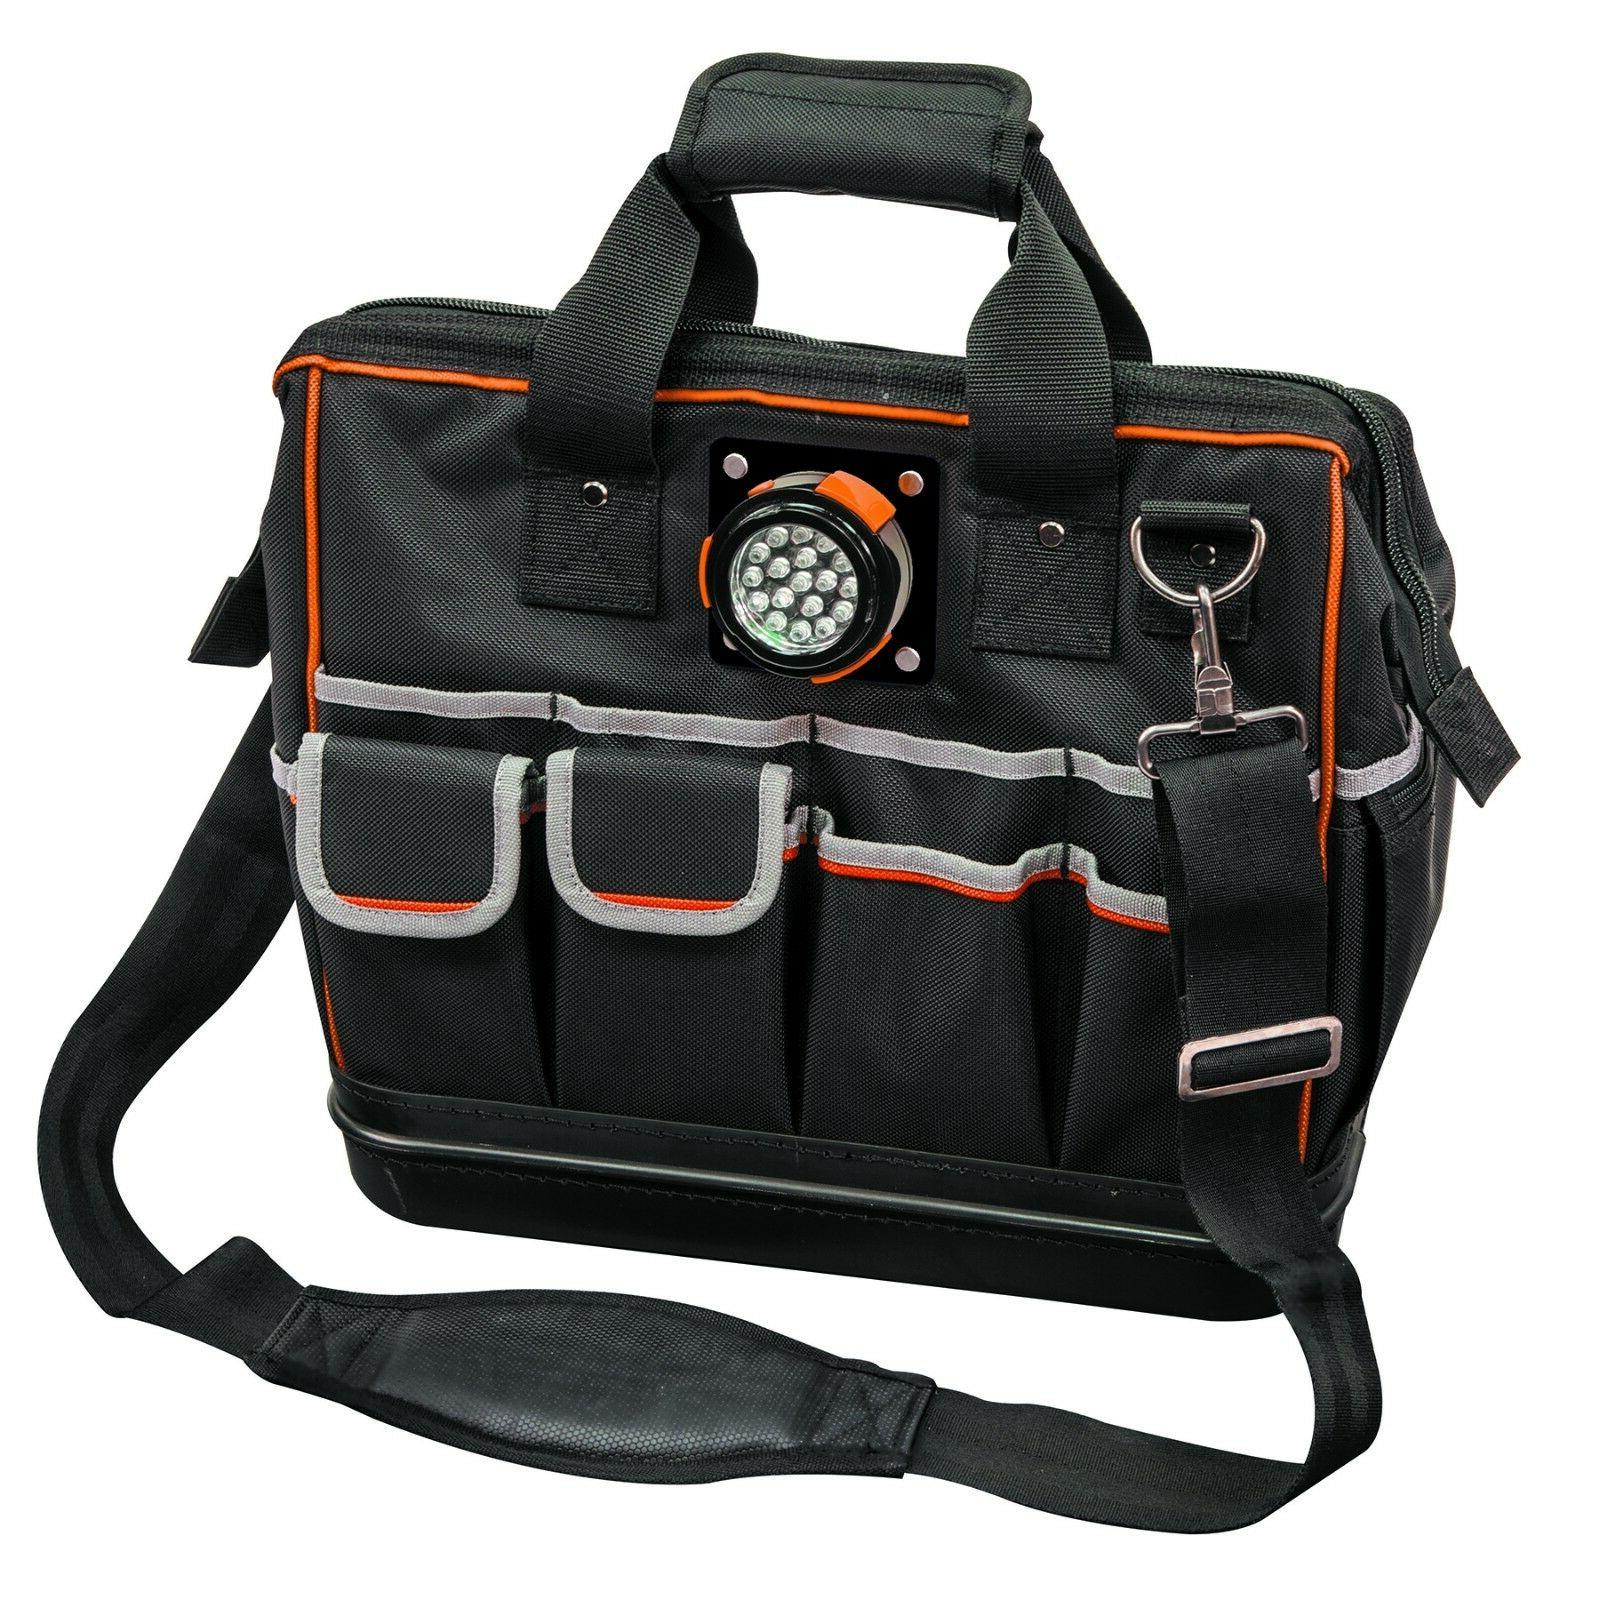 KLEIN TOOLS-55431 Tradesman Pro™ Lighted Tool Bag